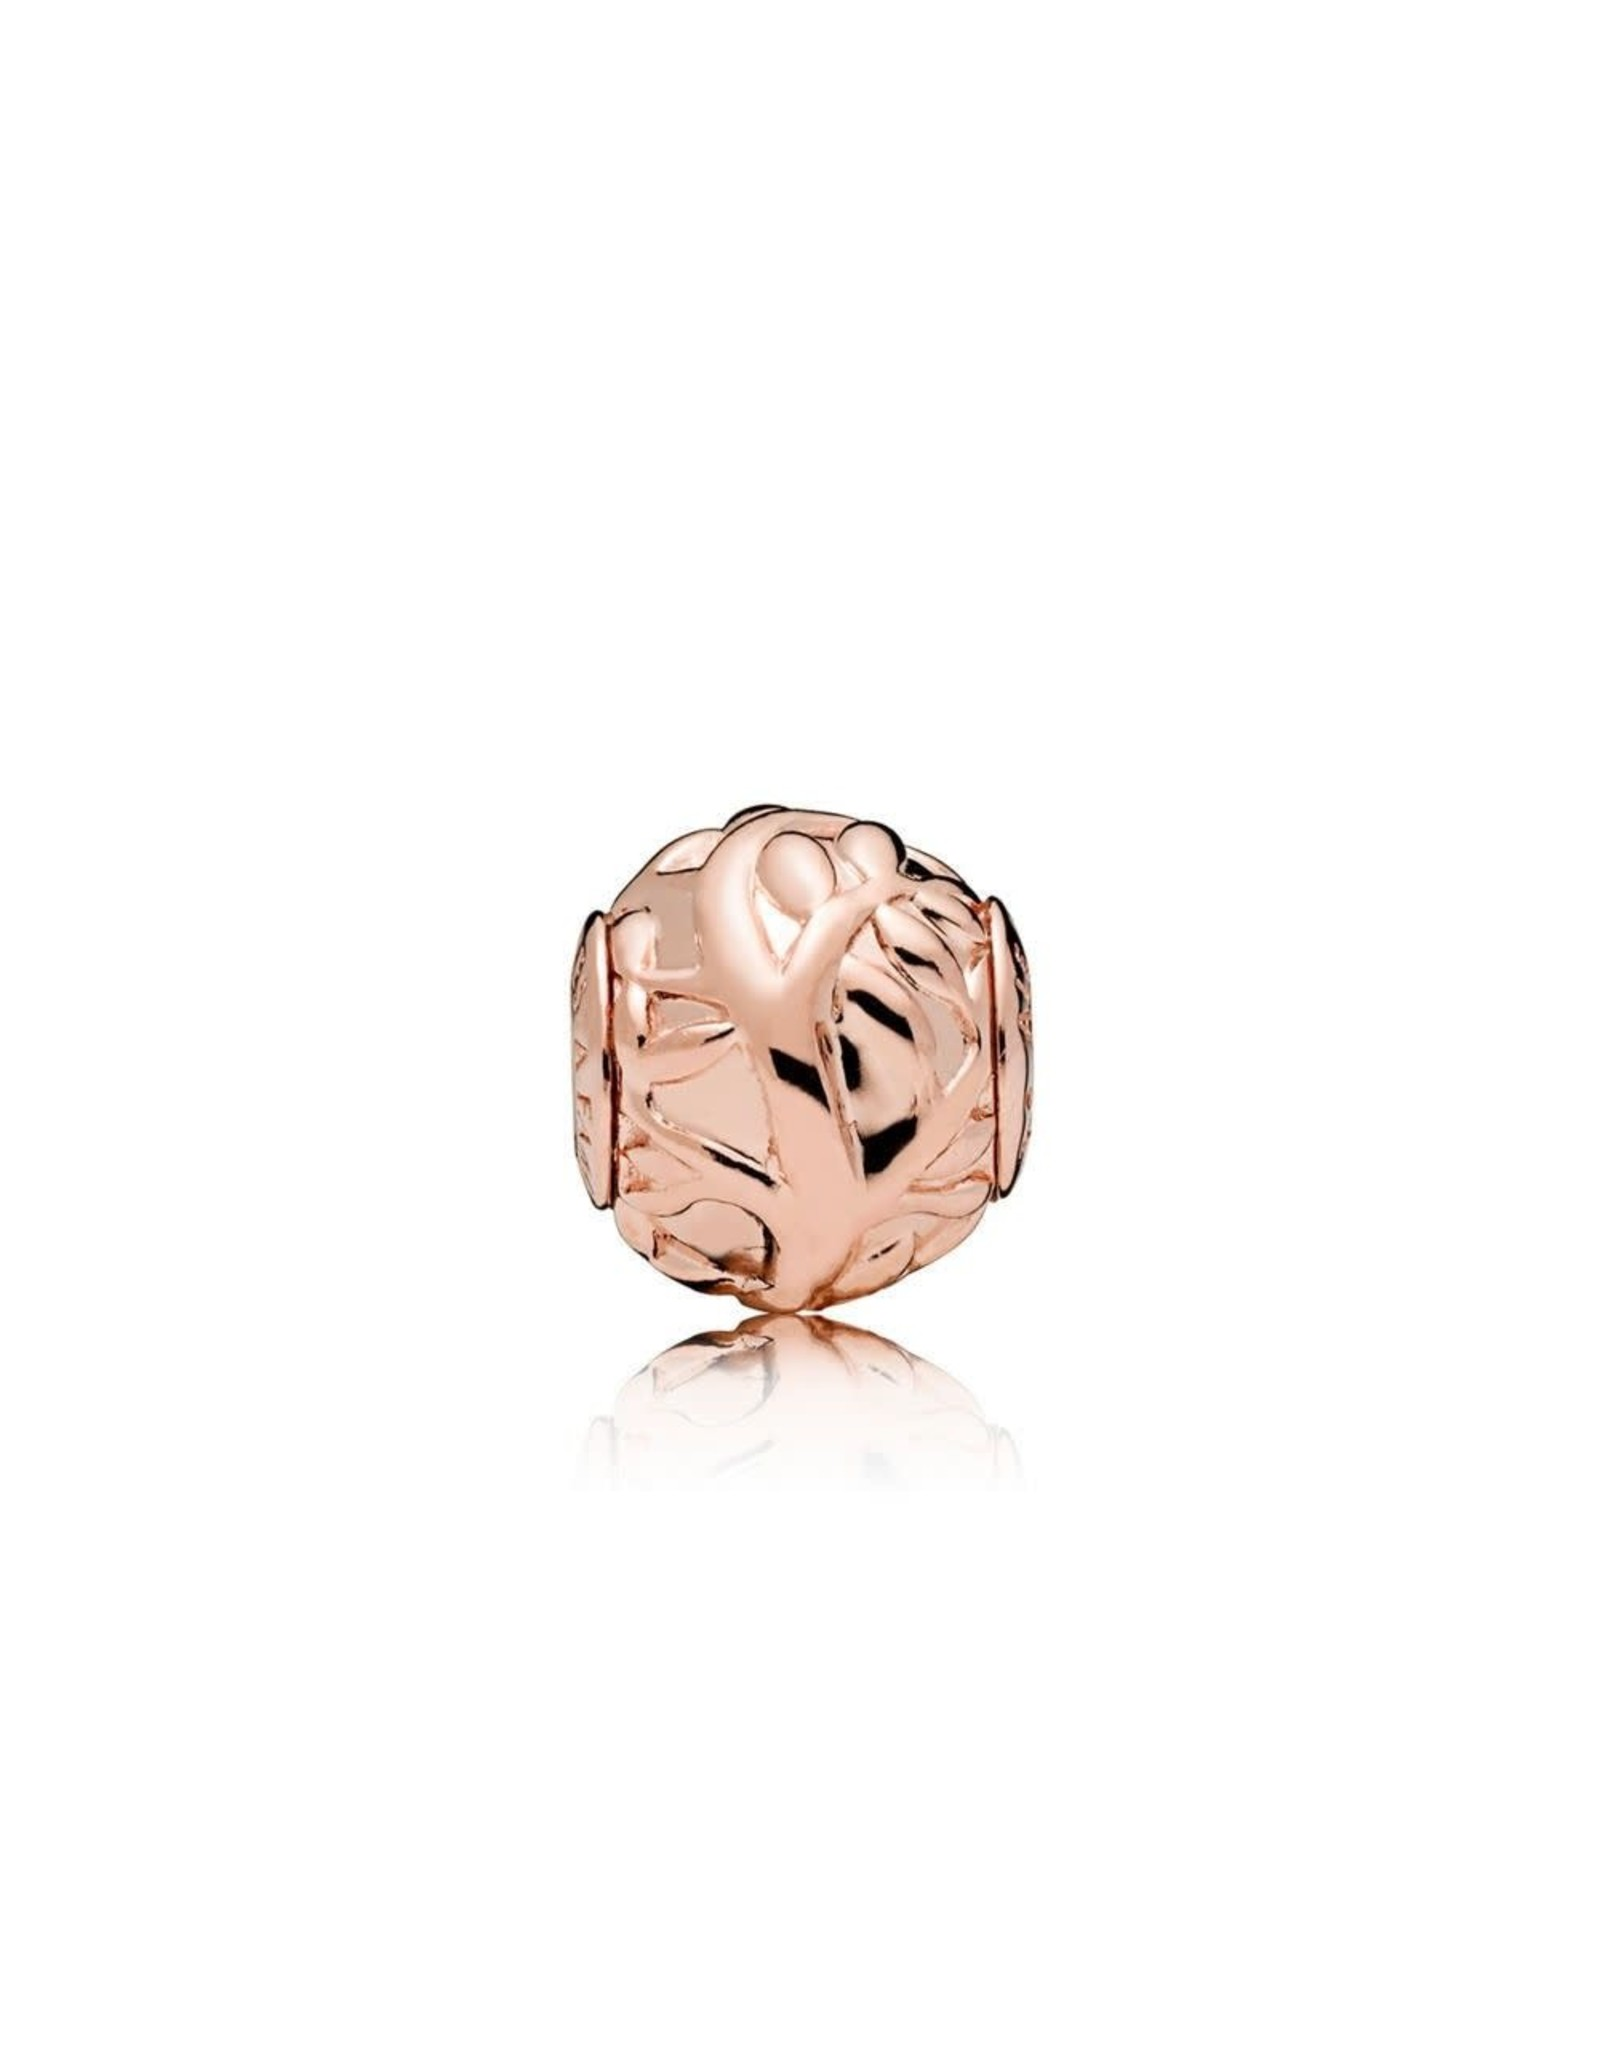 Pandora Pandora Essence Charm, Rose Gold, Love Makes A Family